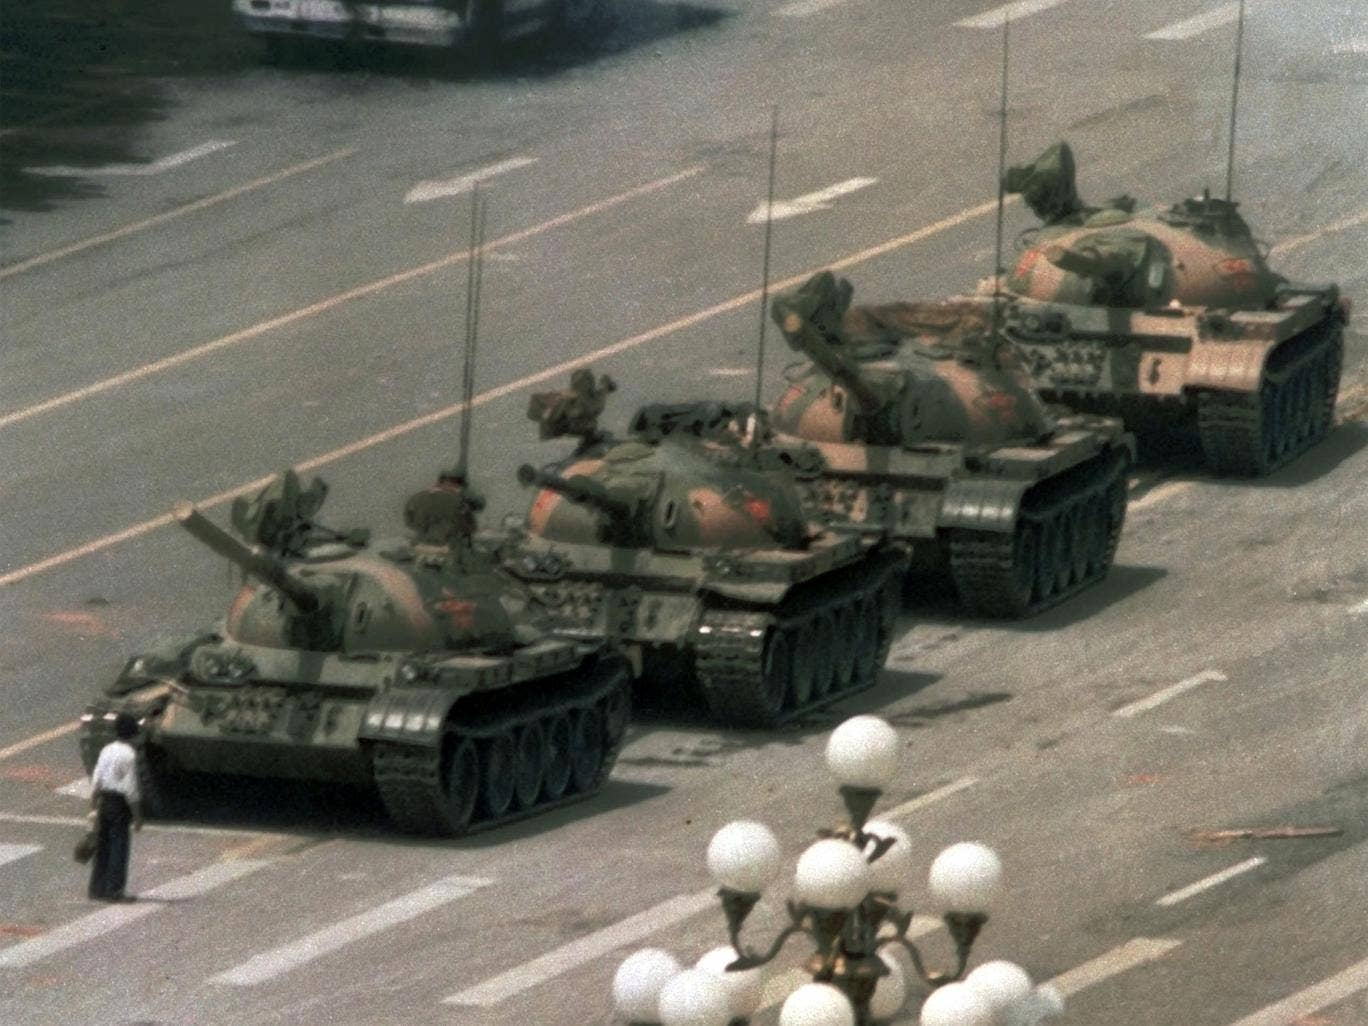 A celebrated image of a man trying to stop the tanks entering the square